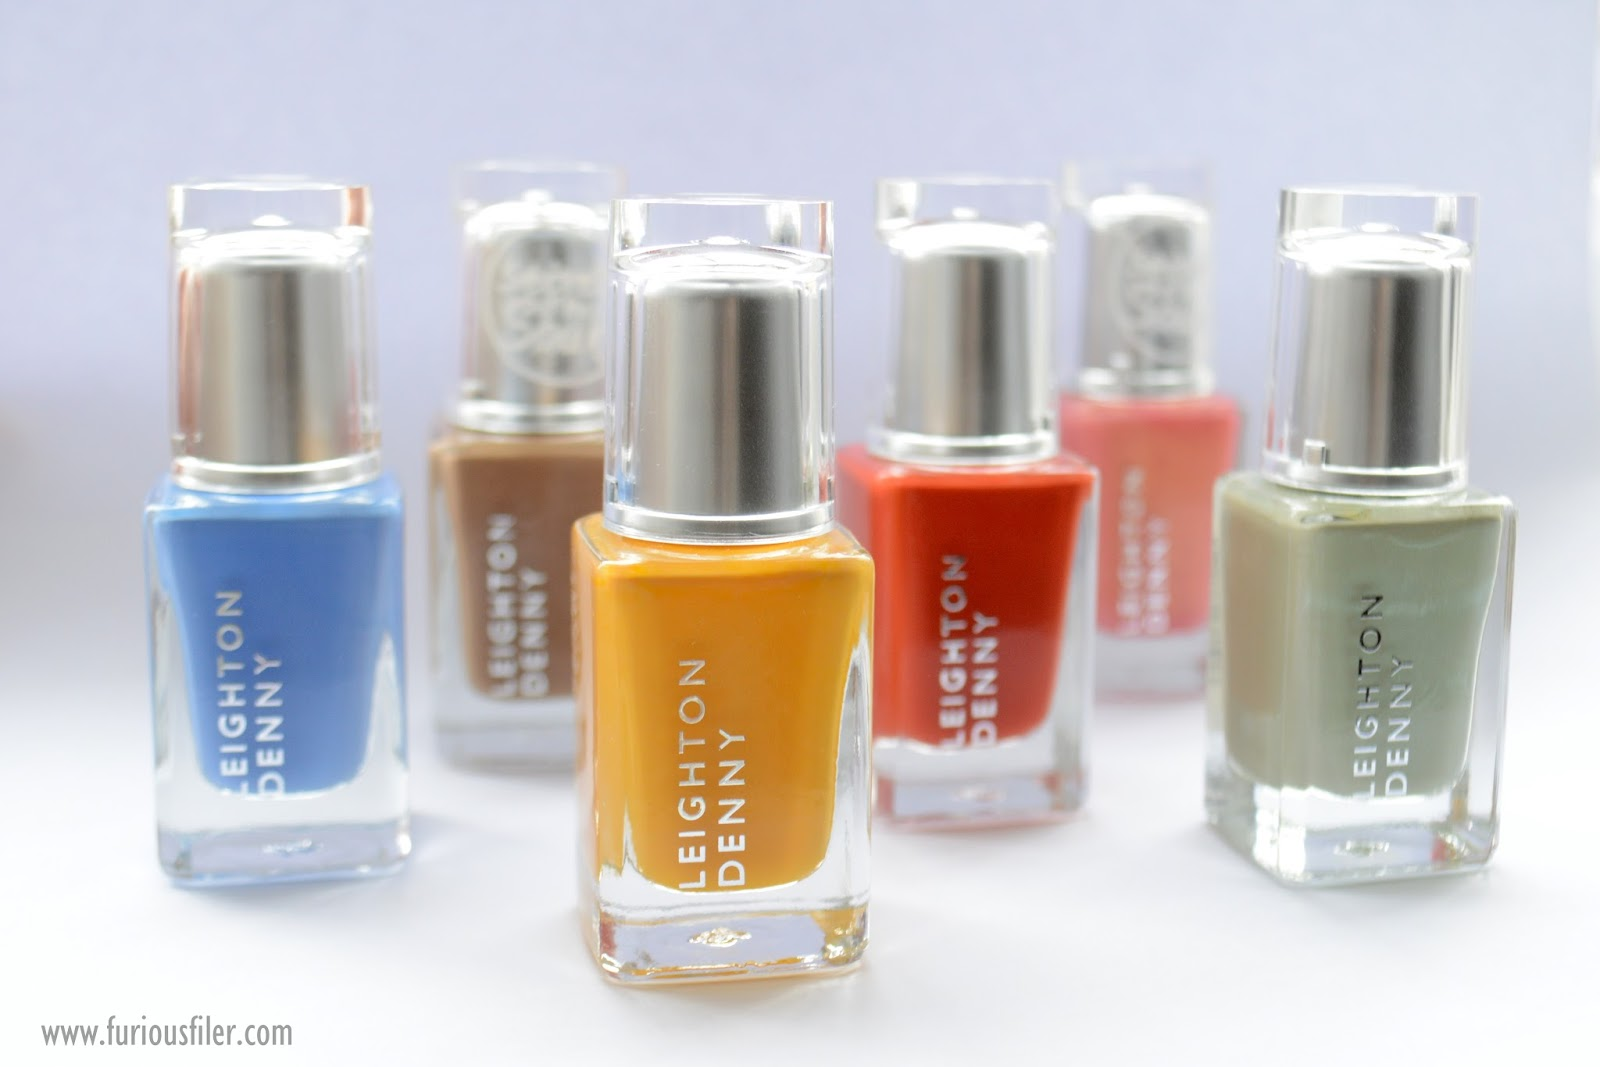 Leighton denny secrets of the souk collection review furious filer